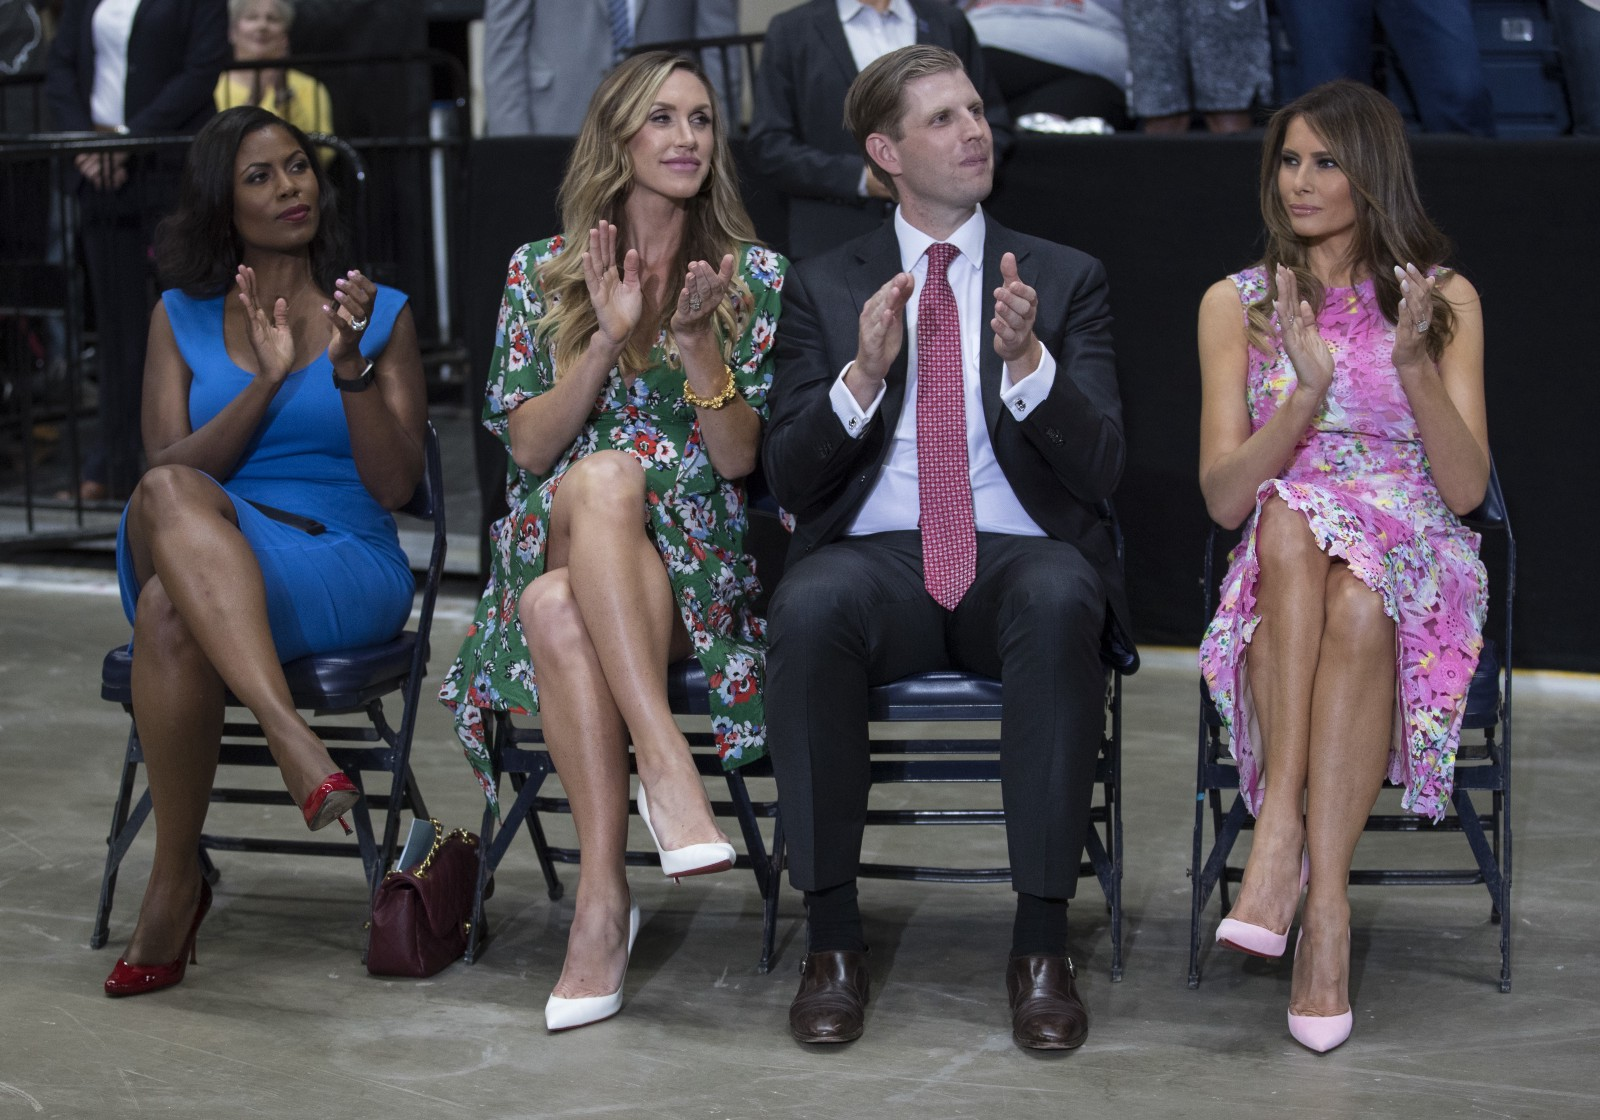 Trump's daughter-in-law hosts 'real news' program on his Facebook page